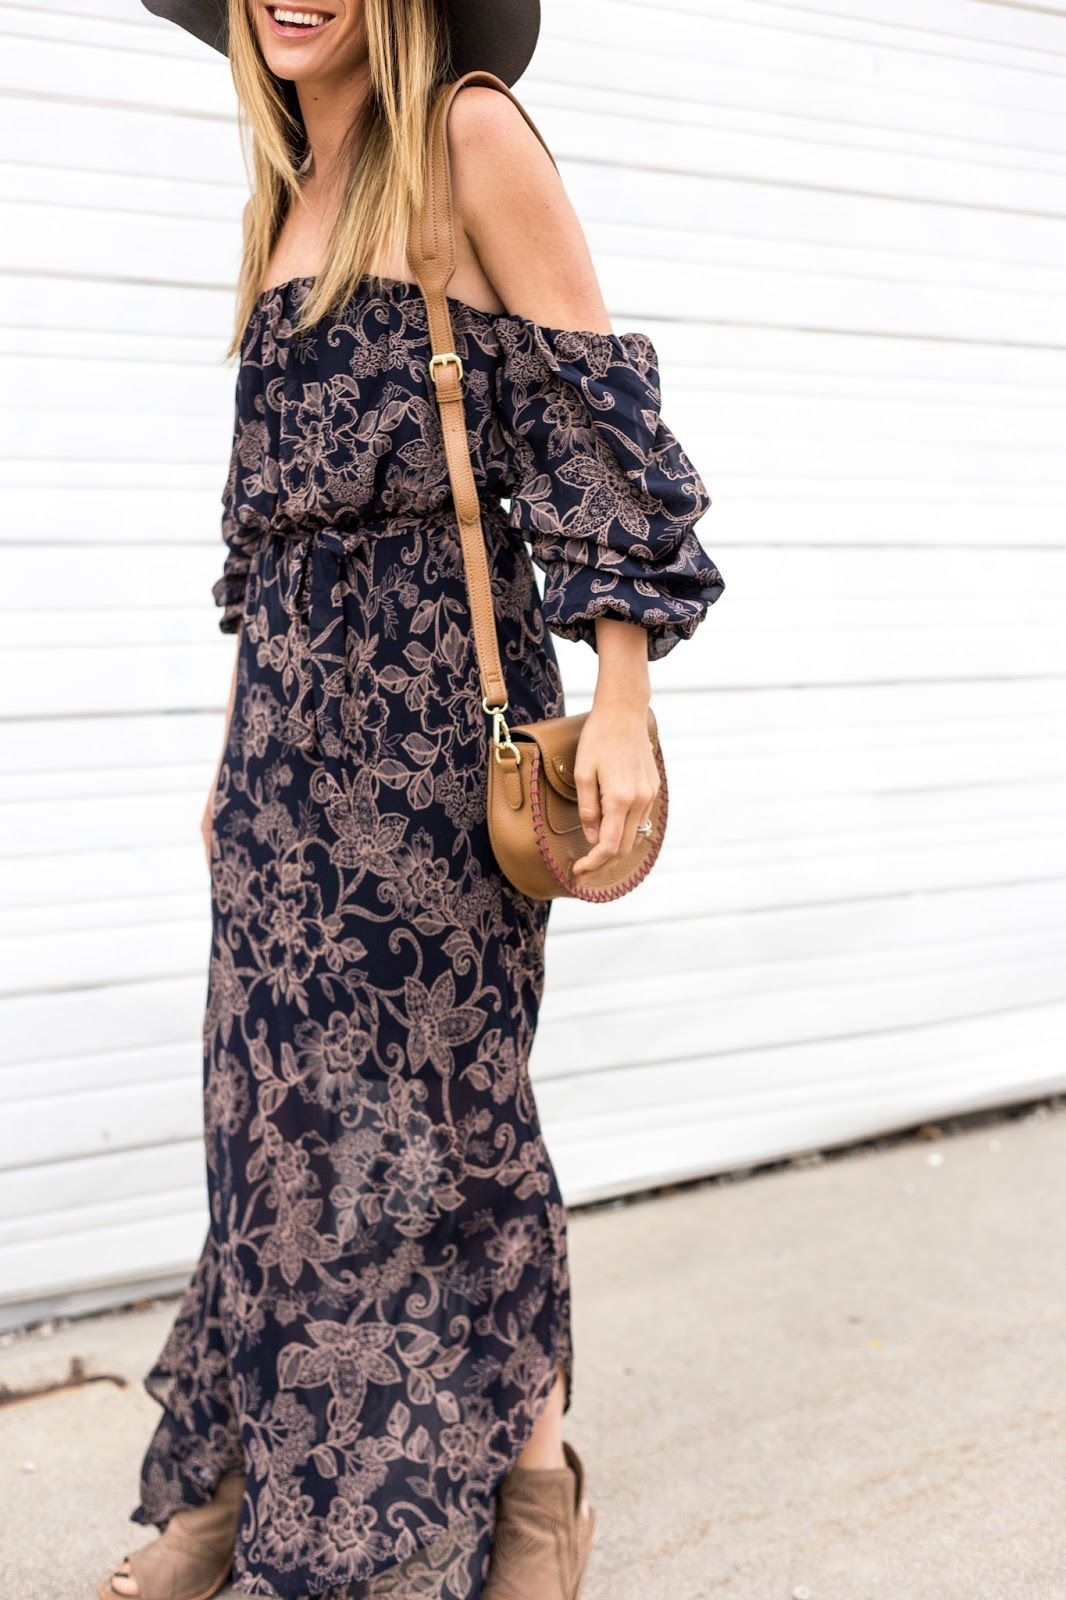 Maxi floral dresses favorite summer outfit forecasting to wear for summer in 2019